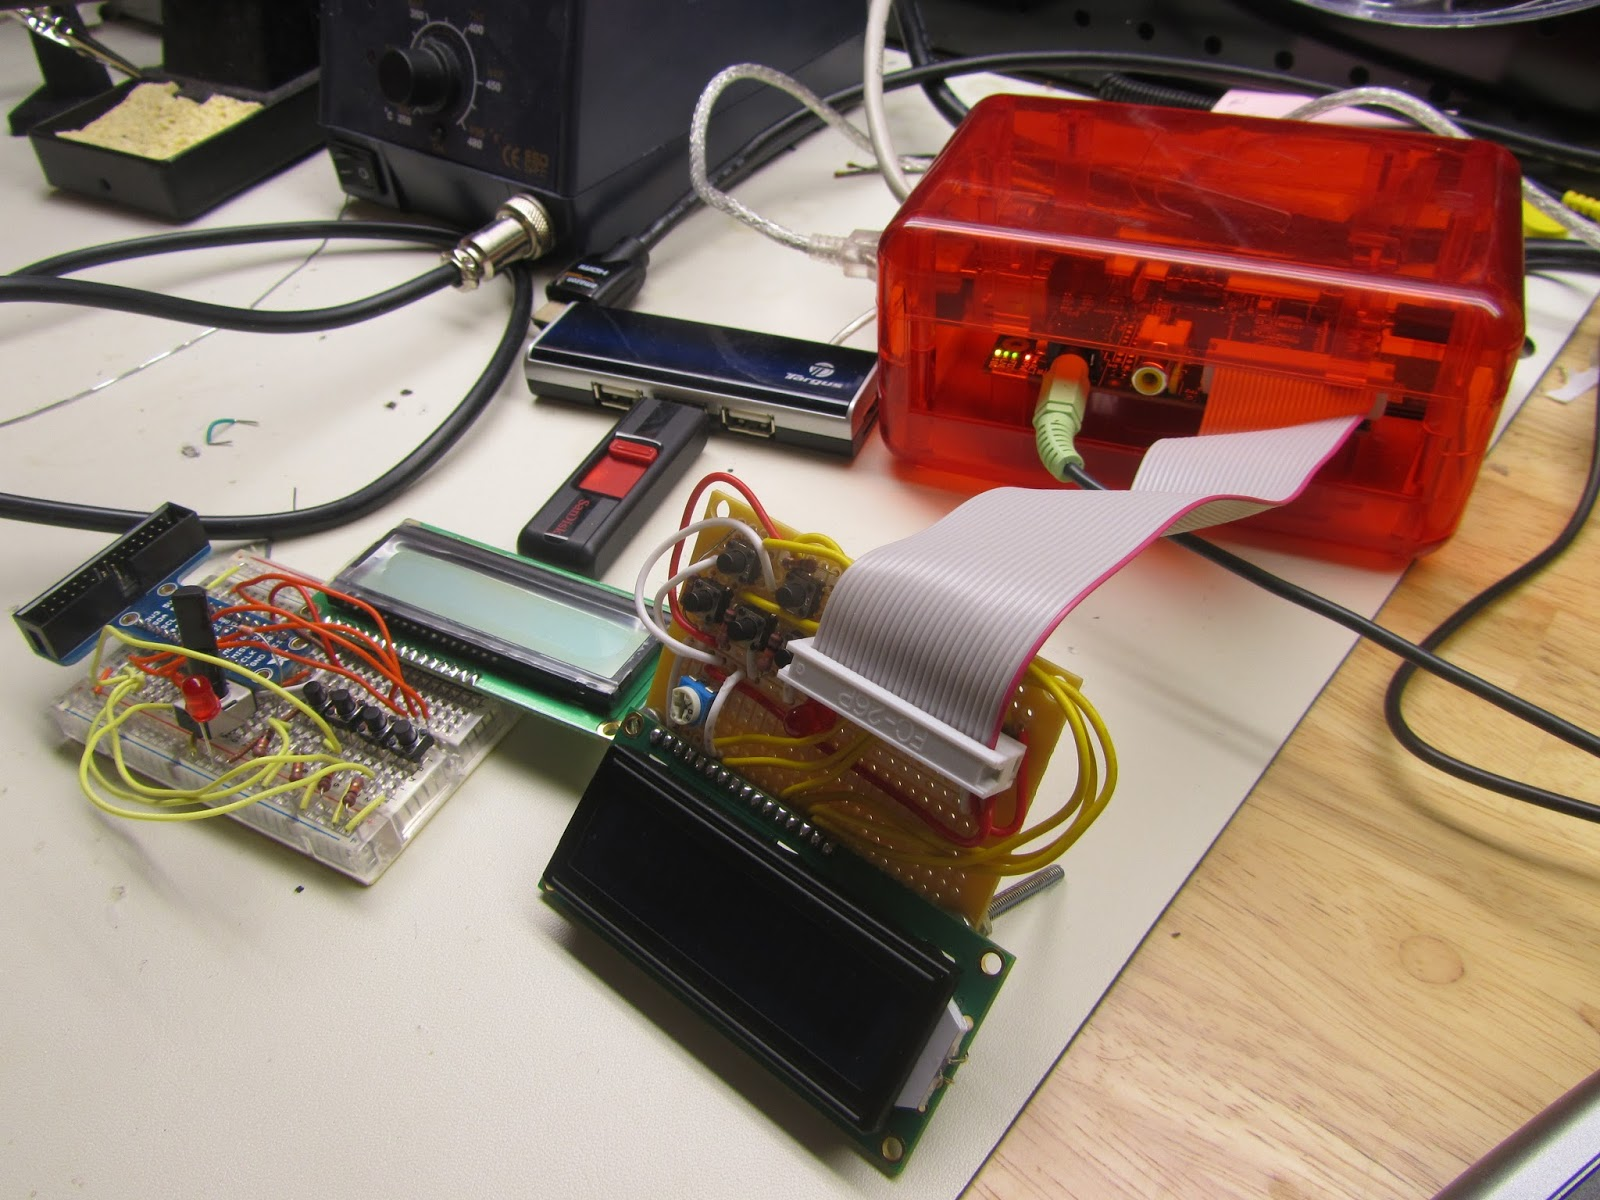 Embedded Projects: Raspberry Pi Pandora Streamer